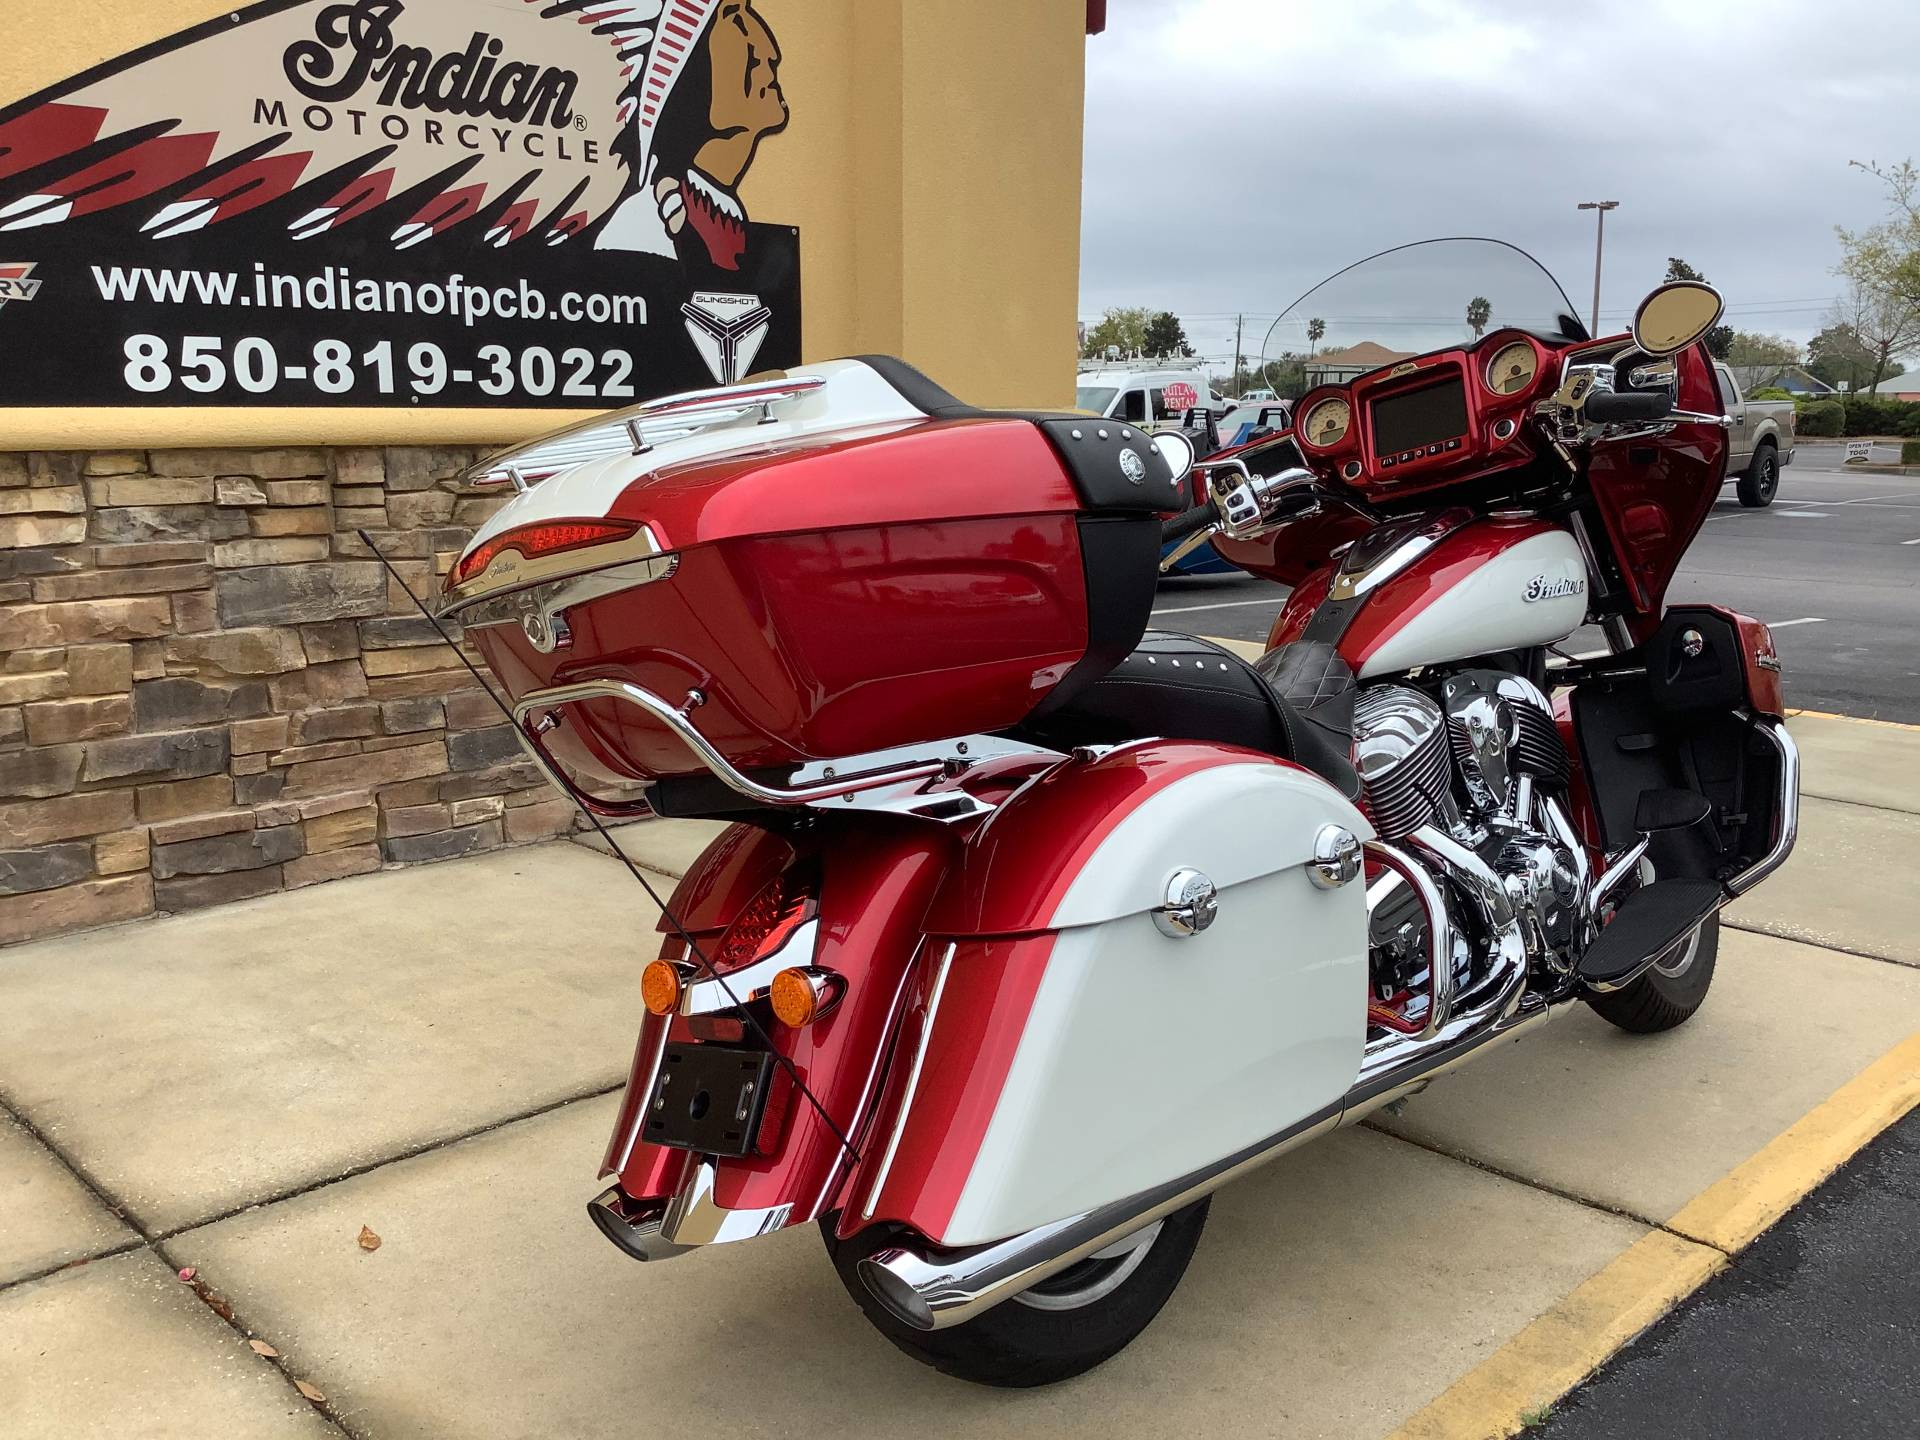 2019 Indian ROADMASTER ICON SERIES in Panama City Beach, Florida - Photo 6